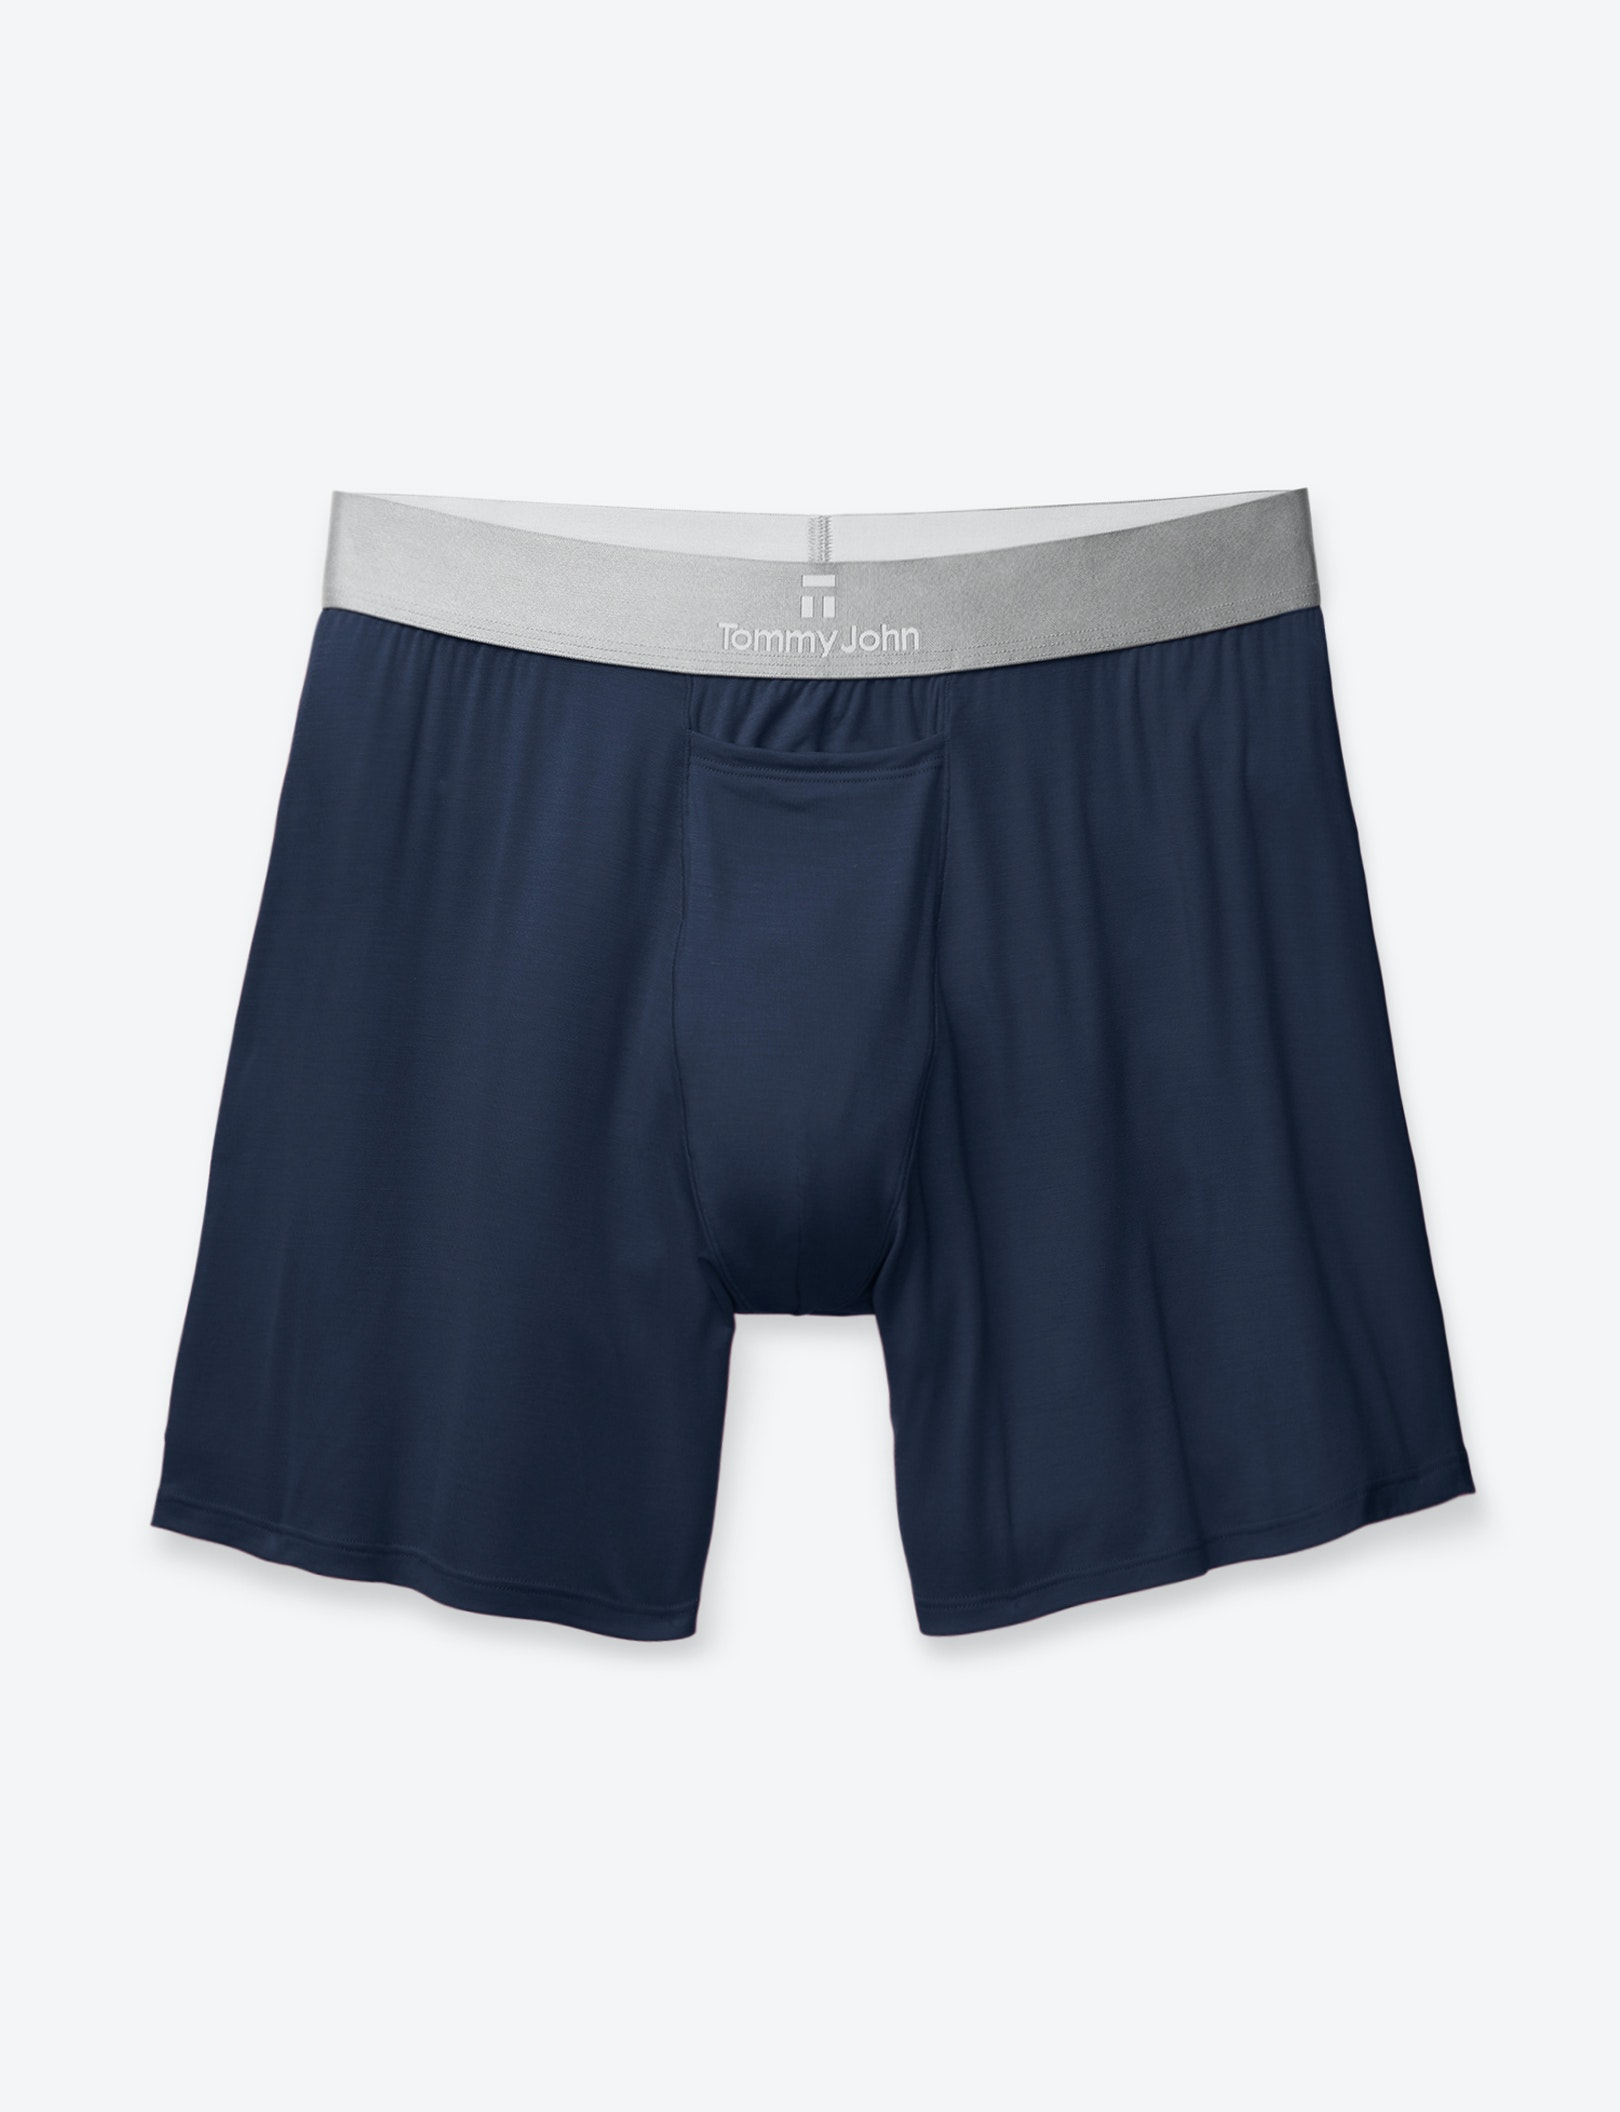 Image of Second Skin Titanium Relaxed Fit Boxer